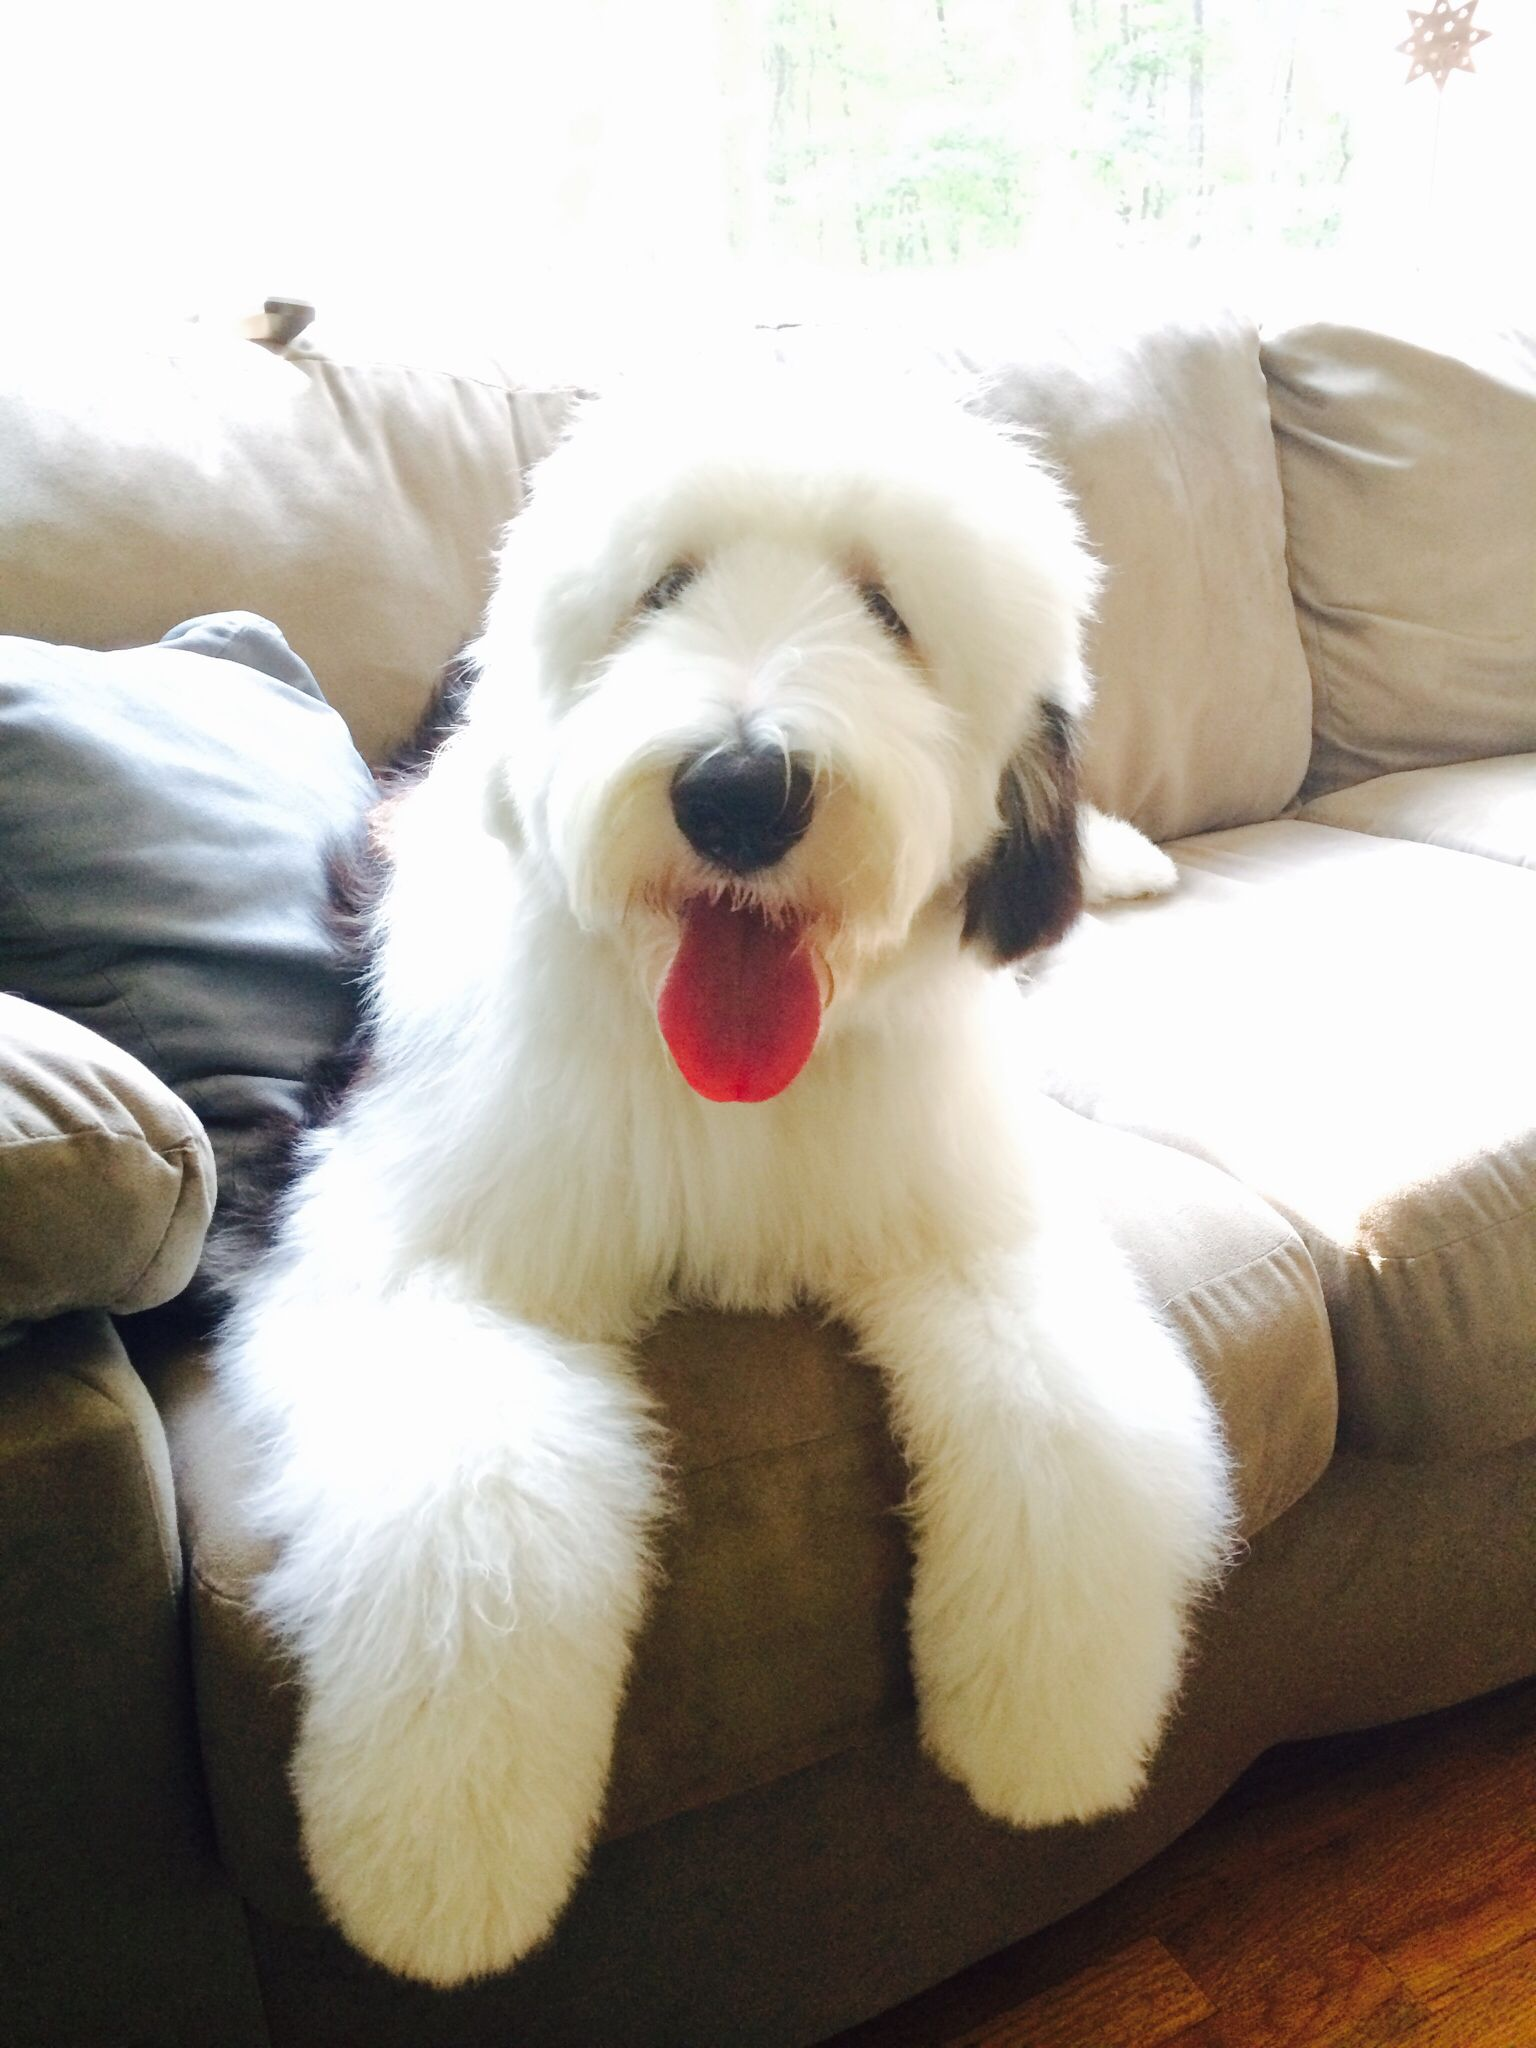 My Old English Sheepdog Fozzie Bear at 7 months old